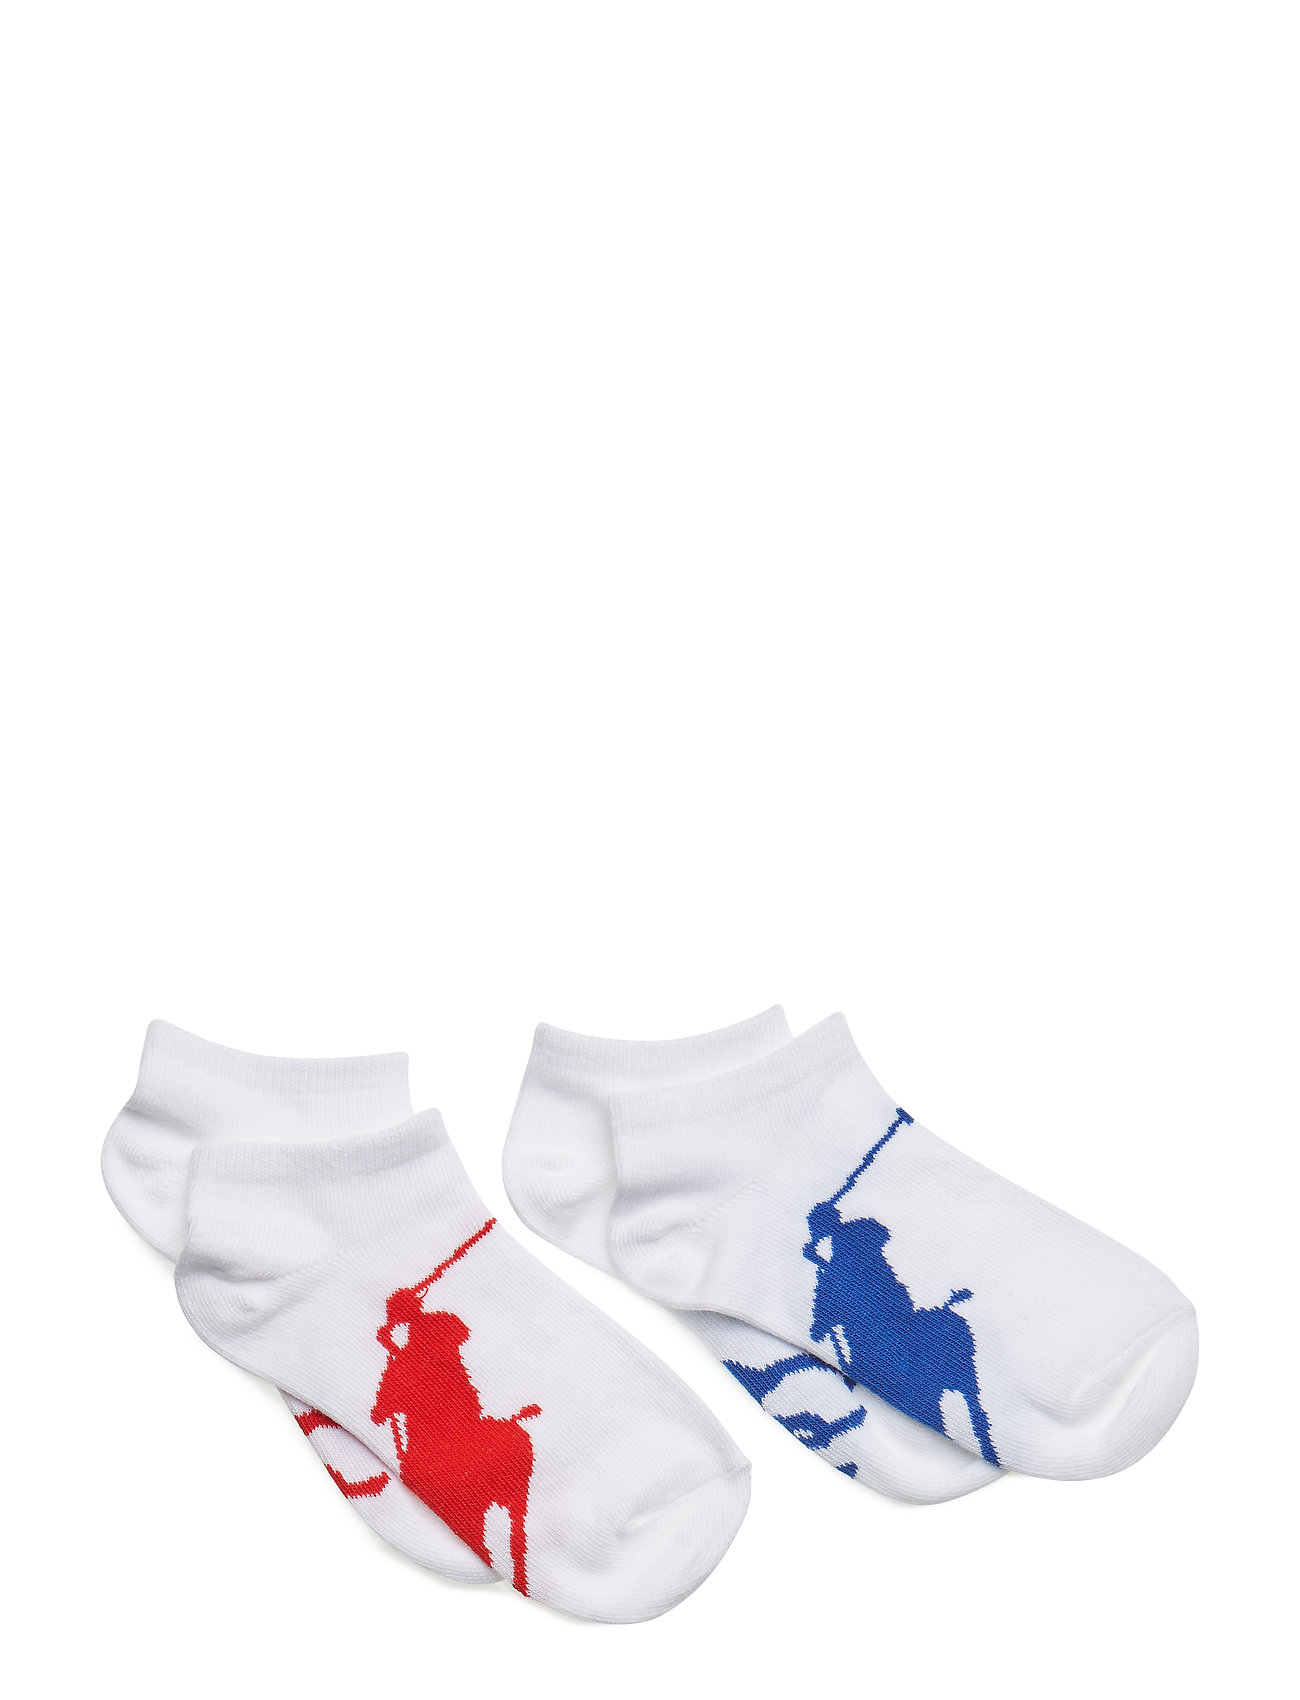 Ralph Lauren Kids COTTON BLEND-BIG PP SCK 2 PK